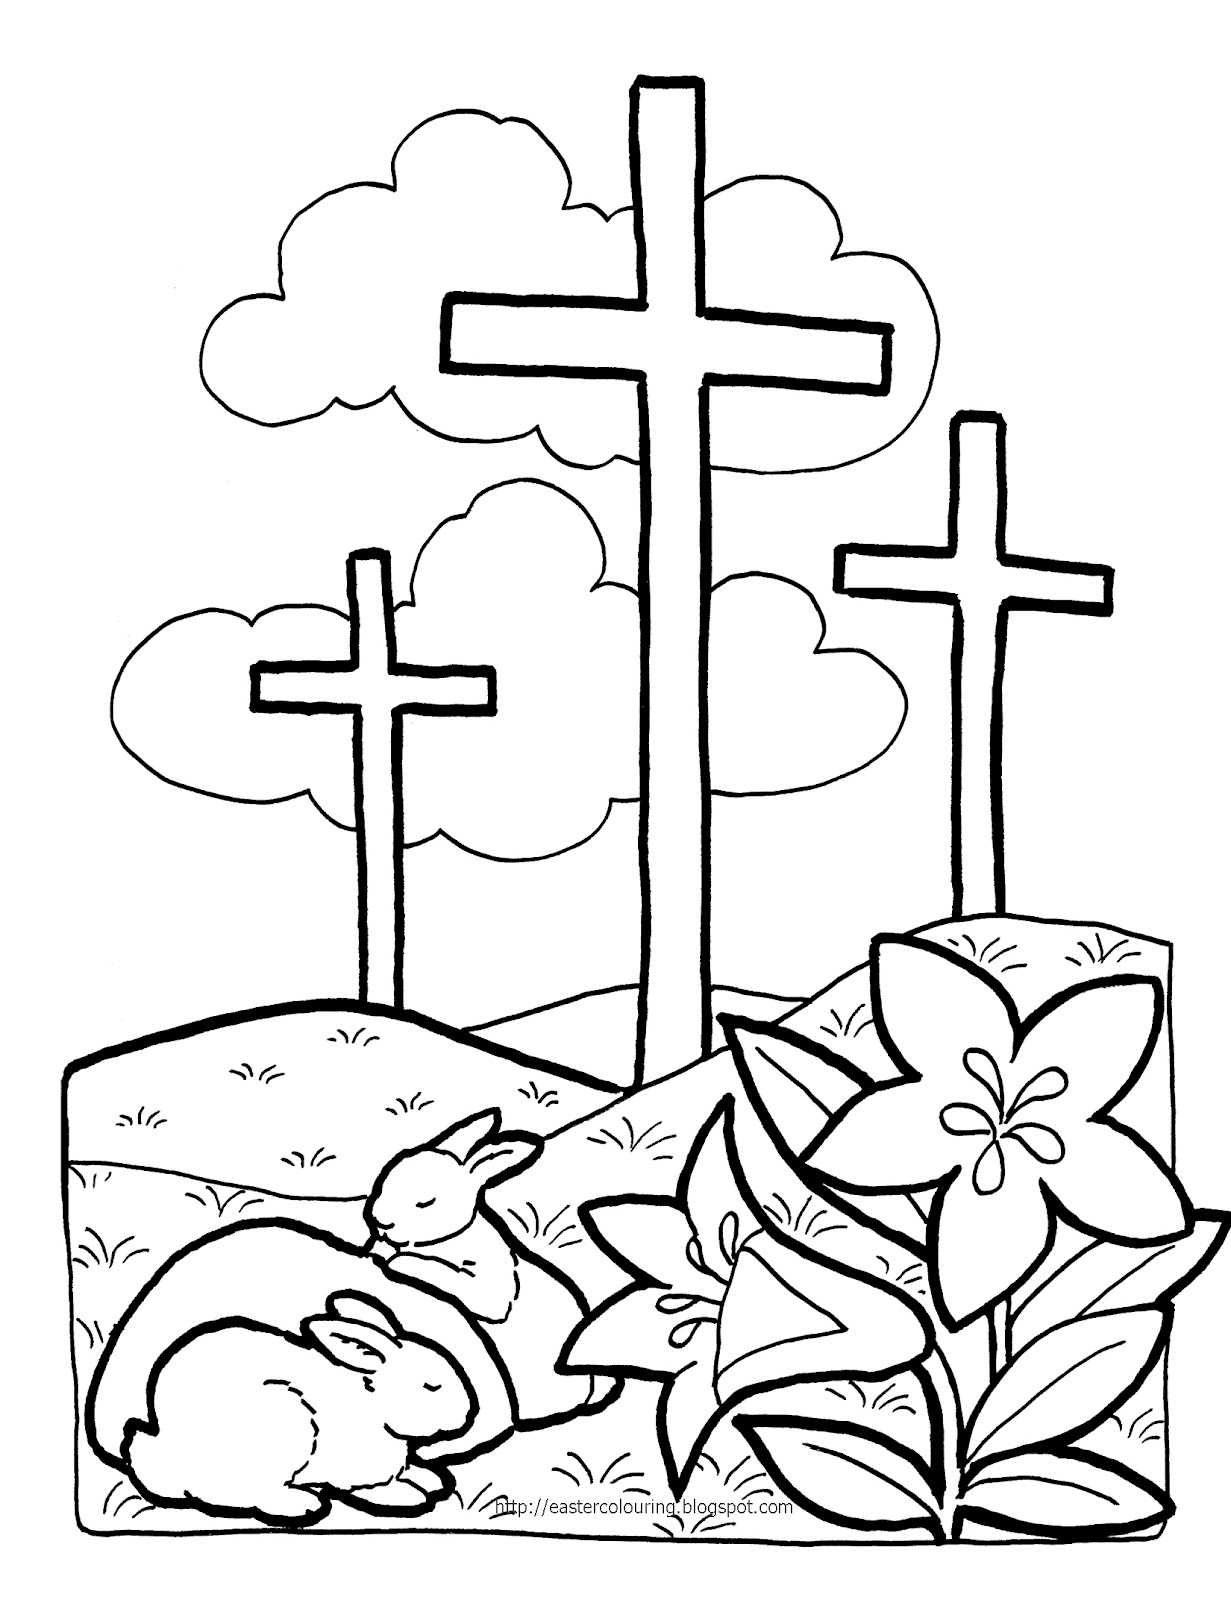 Coloring Pages Free Christian Coloring Pages free printable christian coloring pages for kids best pages